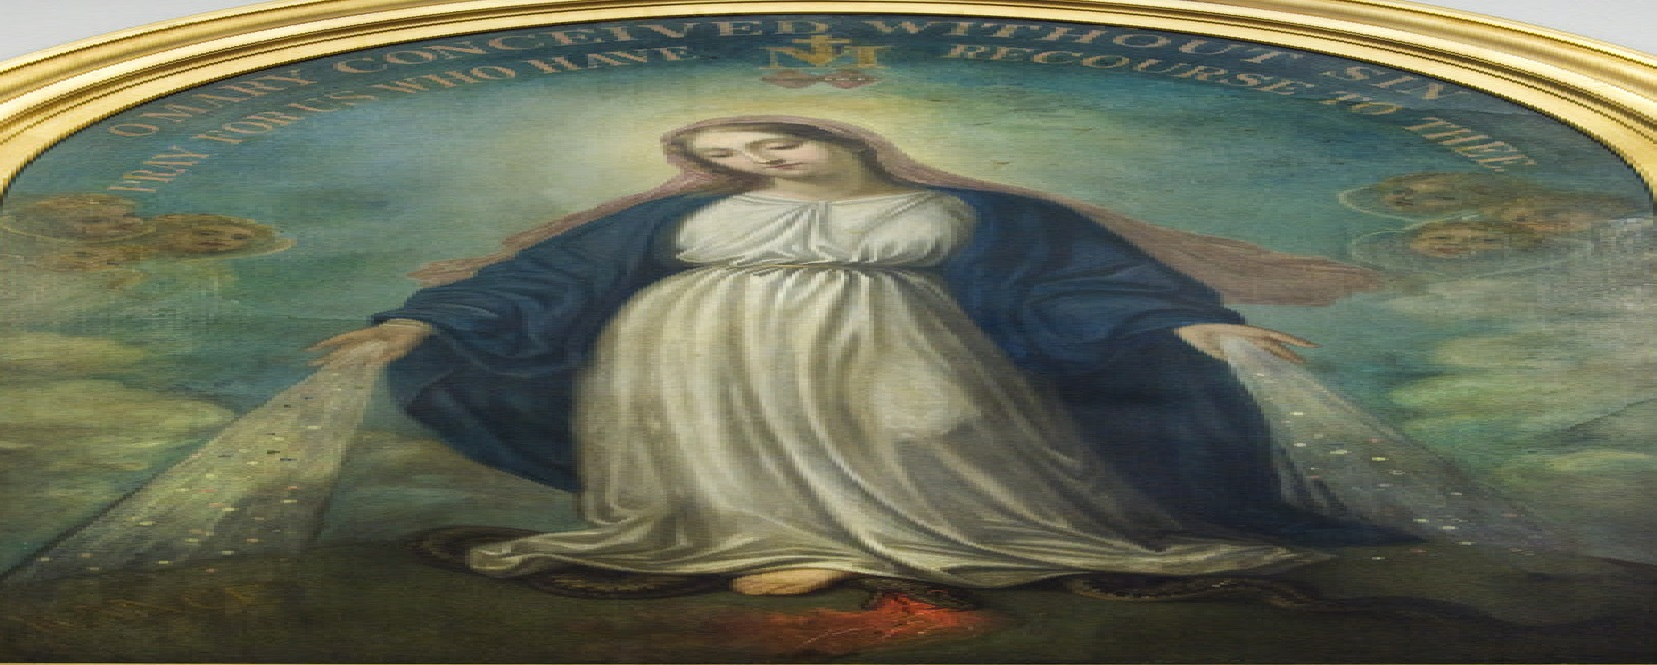 immaculate_conception_3559.jpg